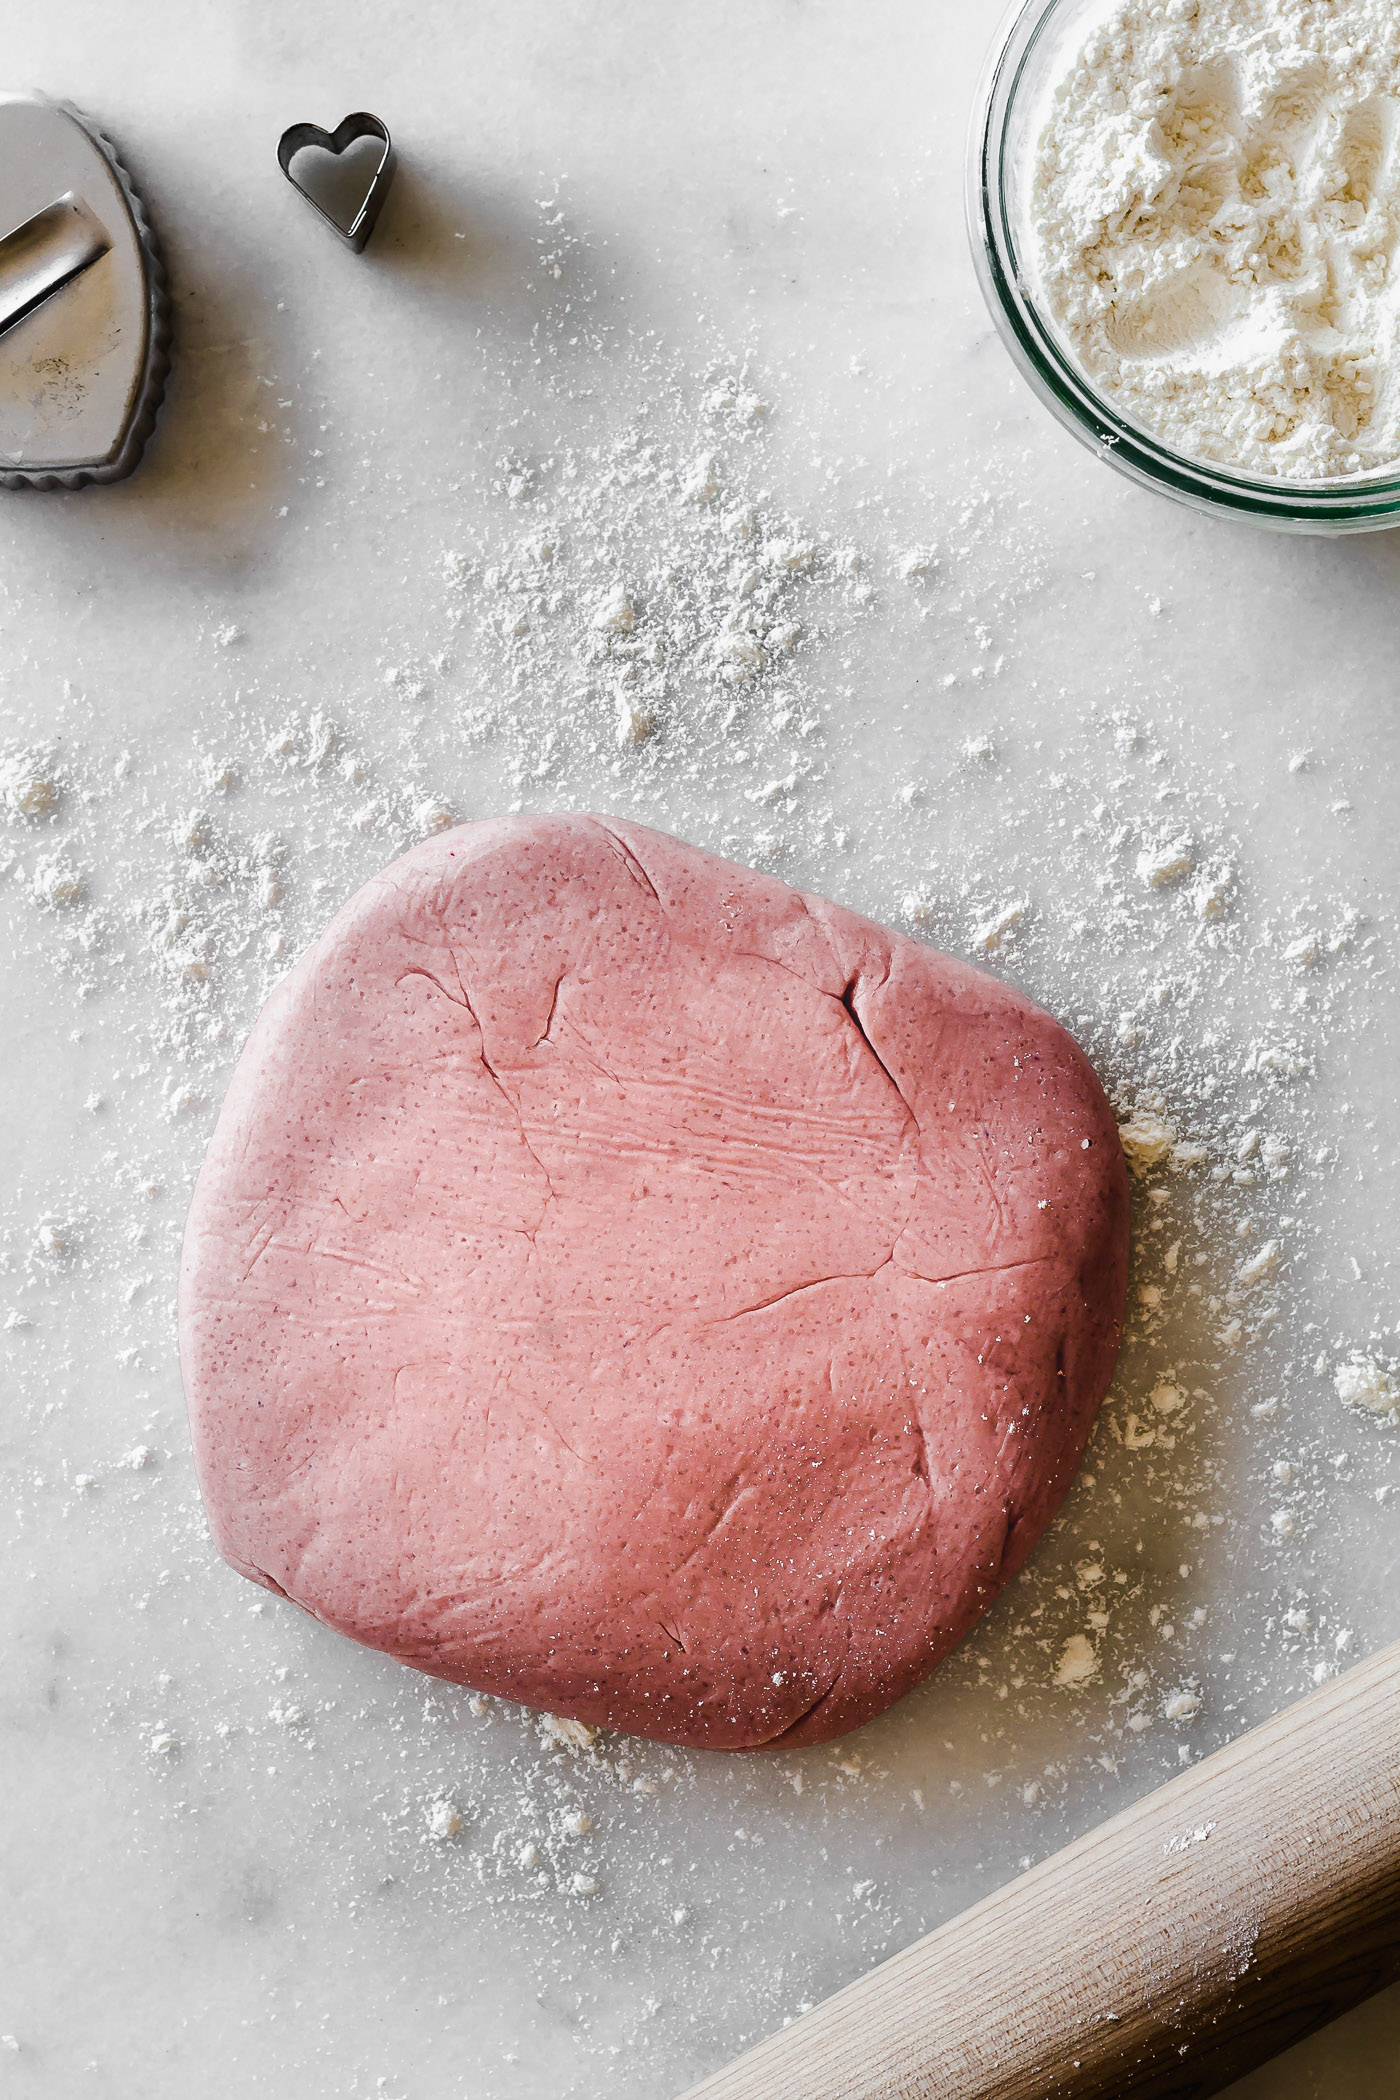 beet dyed pink cookie dough